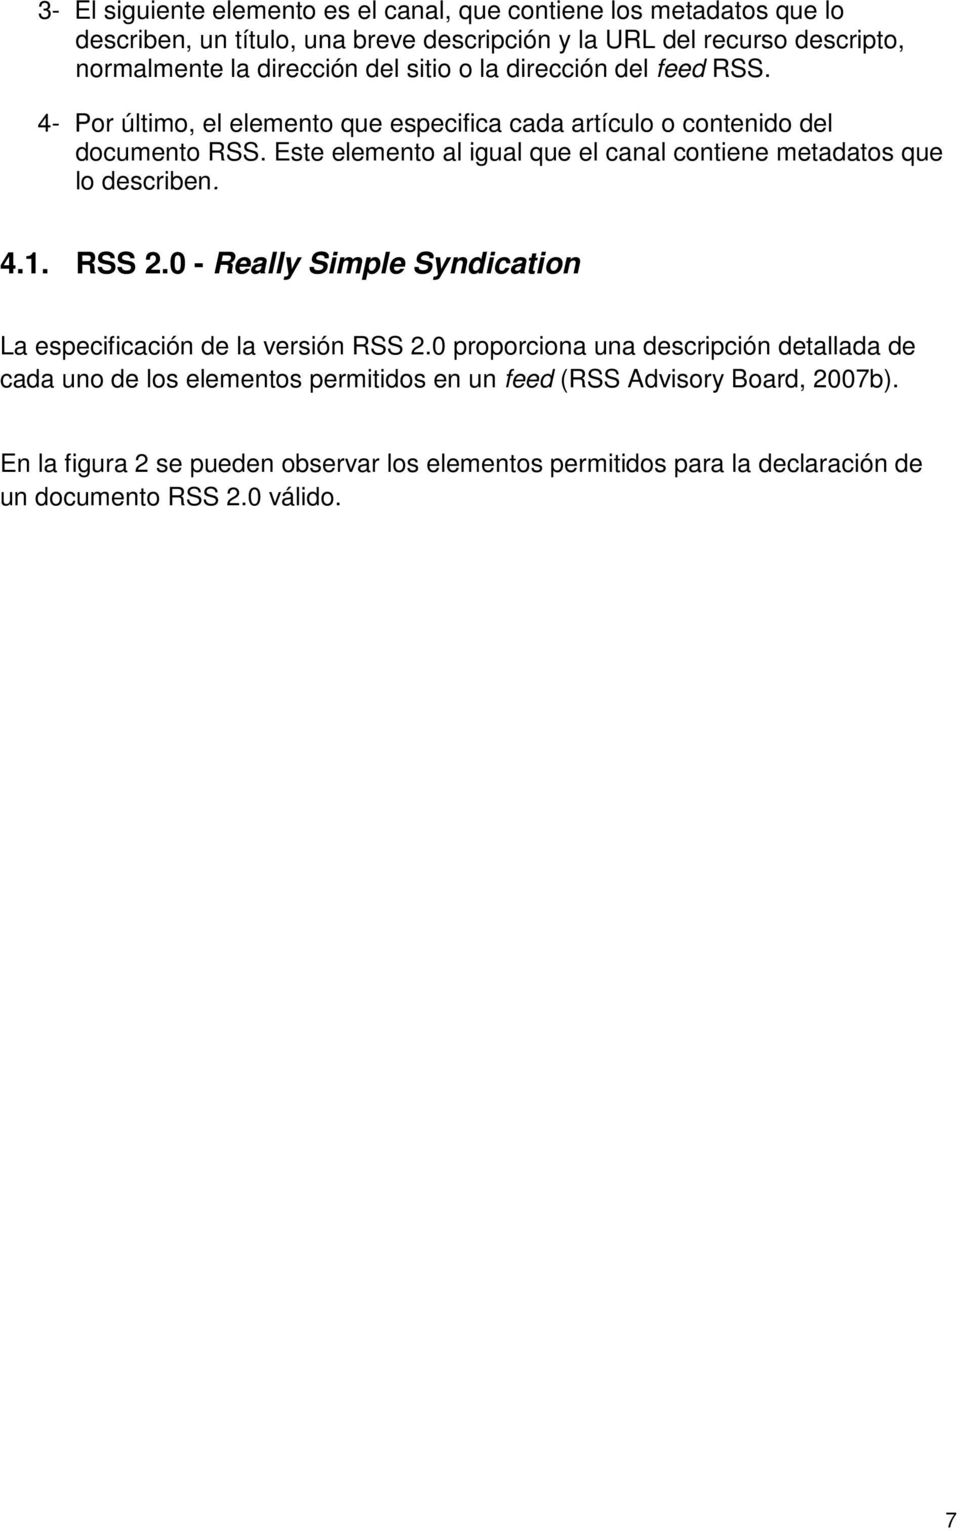 Este elemento al igual que el canal contiene metadatos que lo describen. 4.1. RSS 2.0 - Really Simple Syndication La especificación de la versión RSS 2.